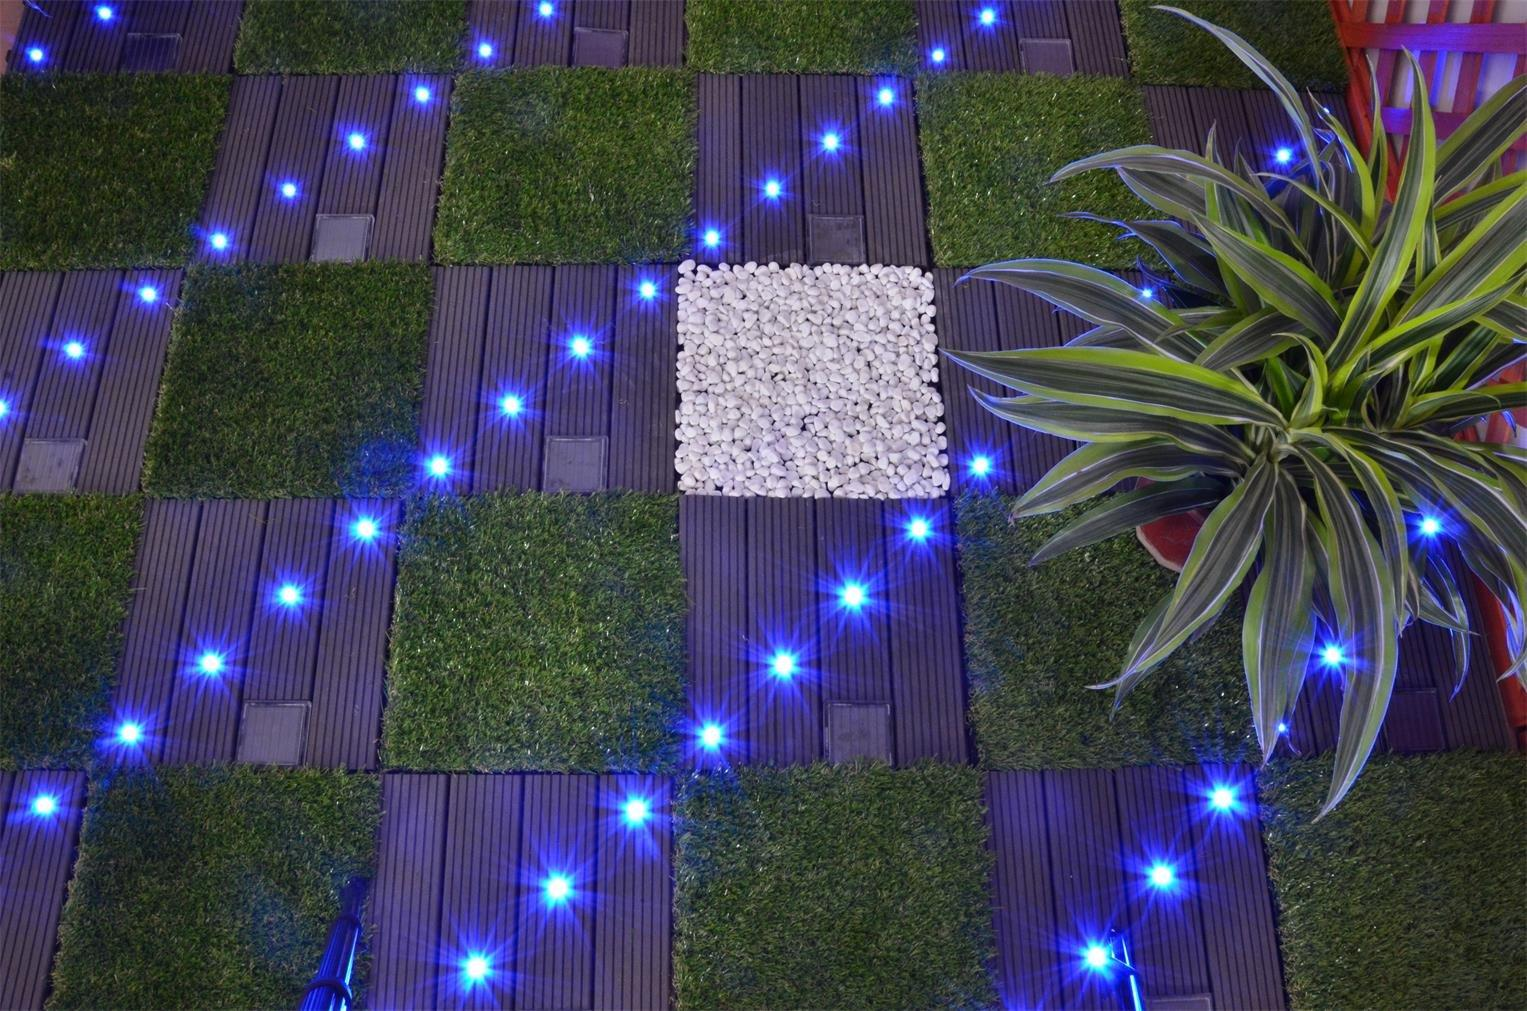 solar light tiles light ecofriendly JIABANG Brand balcony deck tiles